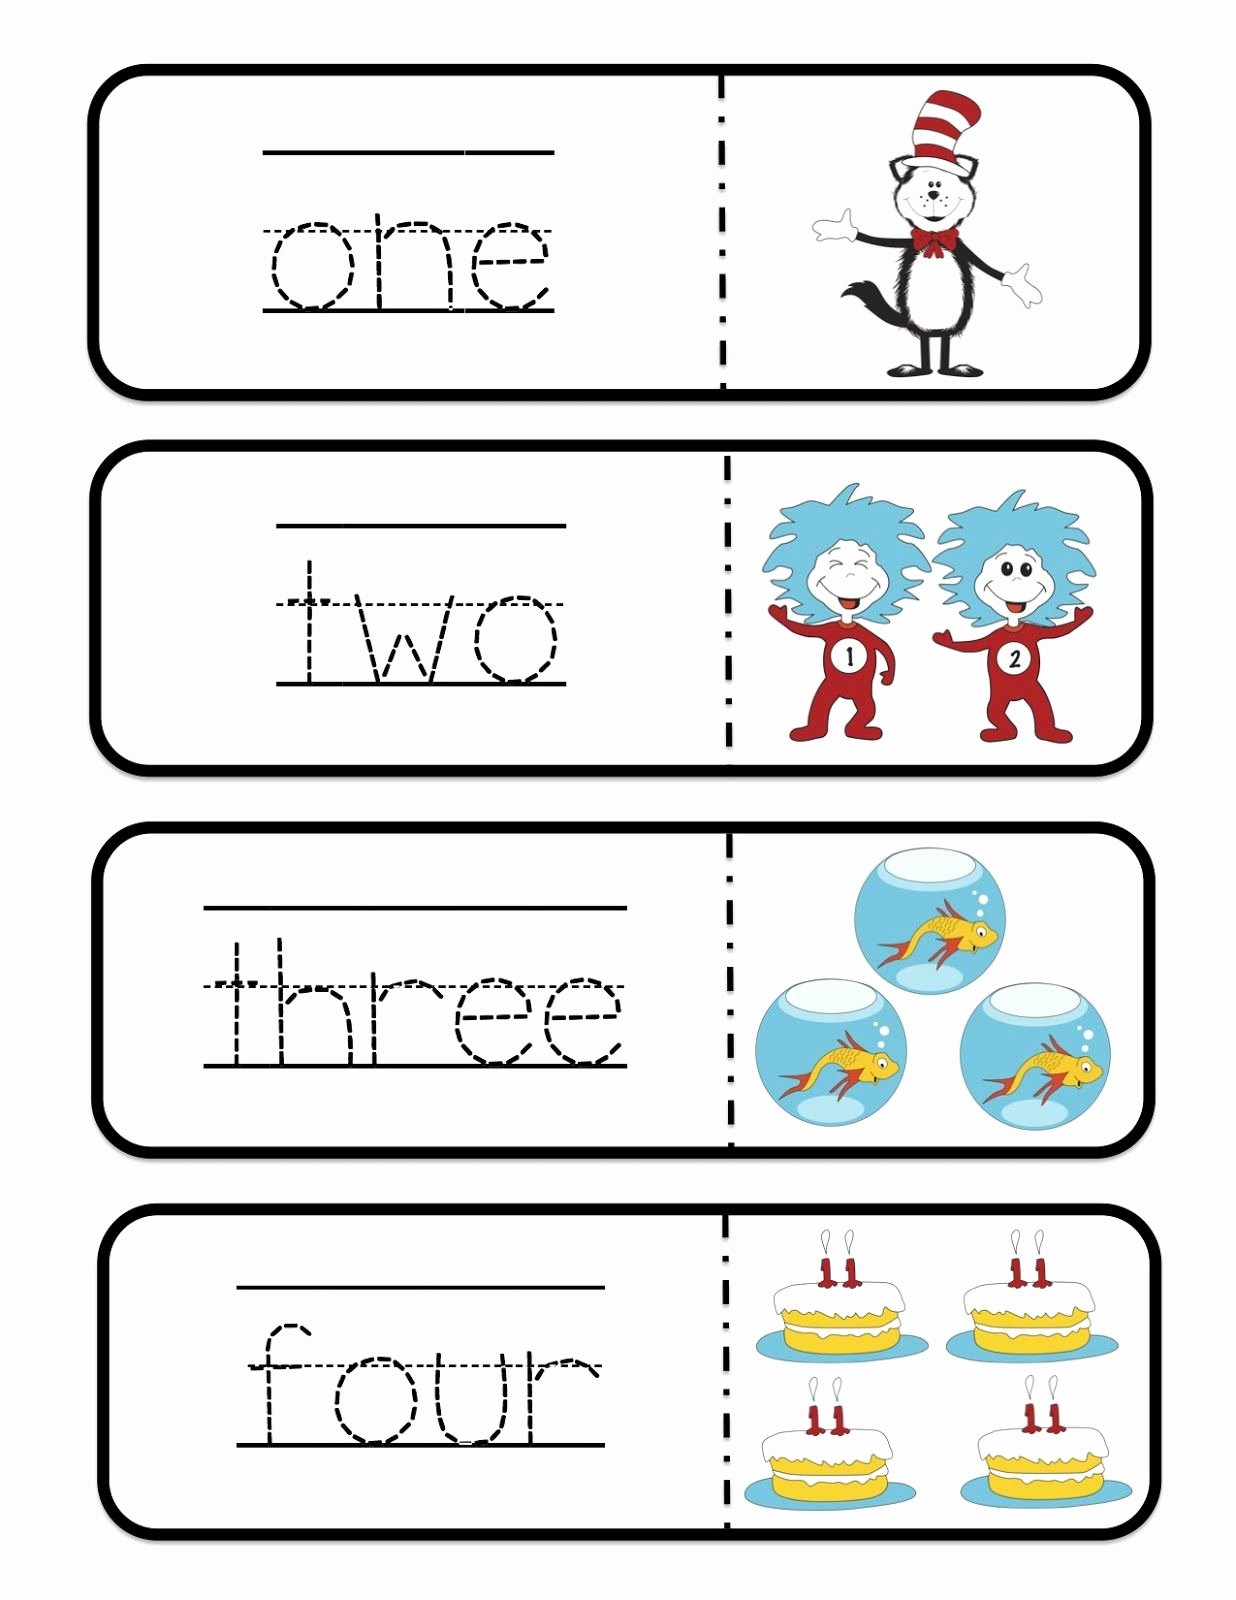 Dr Seuss Worksheets for Preschoolers Inspirational Tracing Drseuss